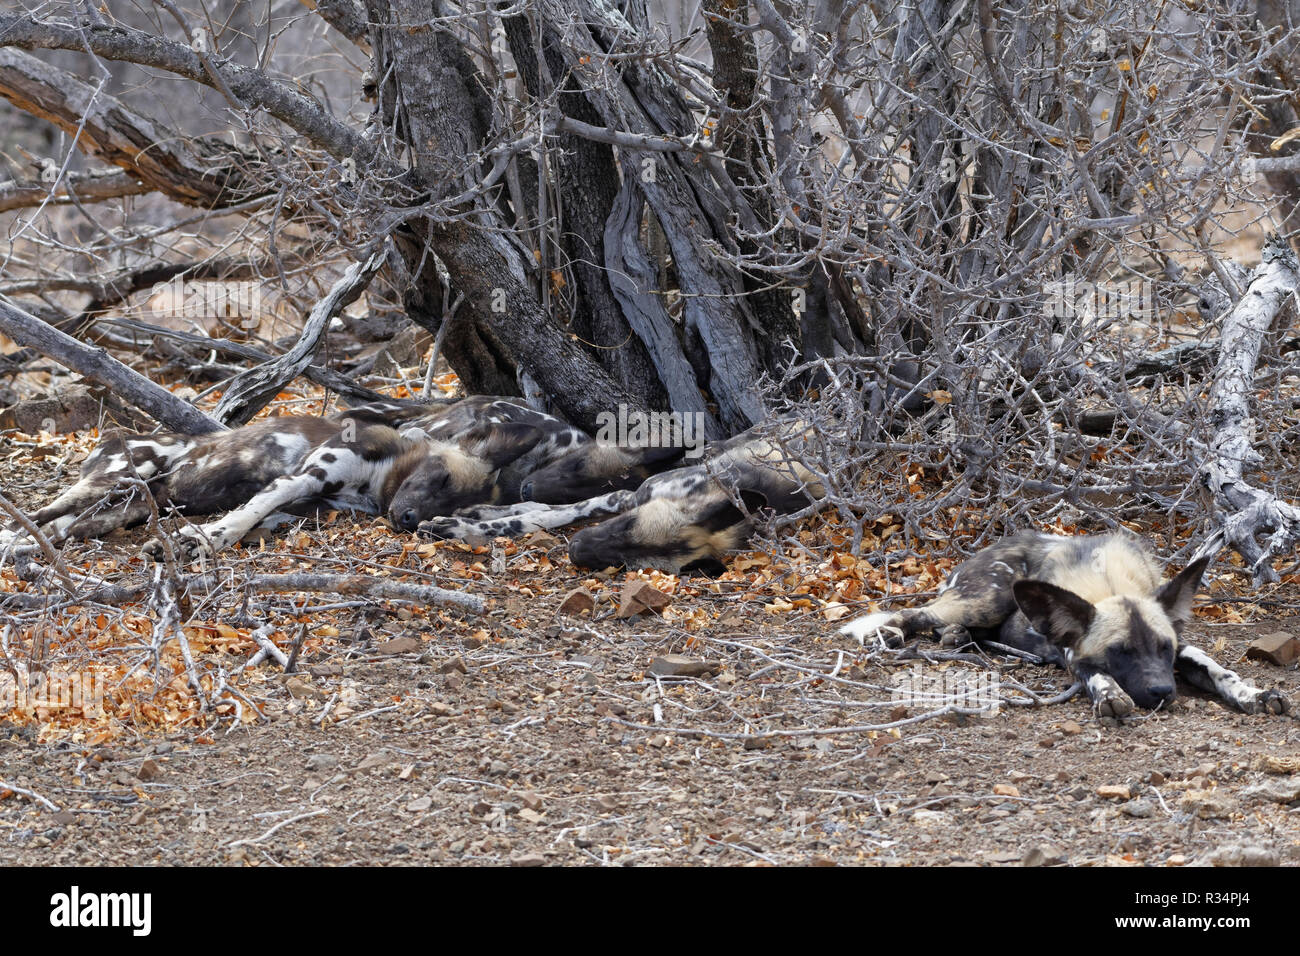 African wild dogs (Lycaon pictus), pack lying on arid ground, sleeping in the shade, Kruger National Park, South Africa, Africa - Stock Image